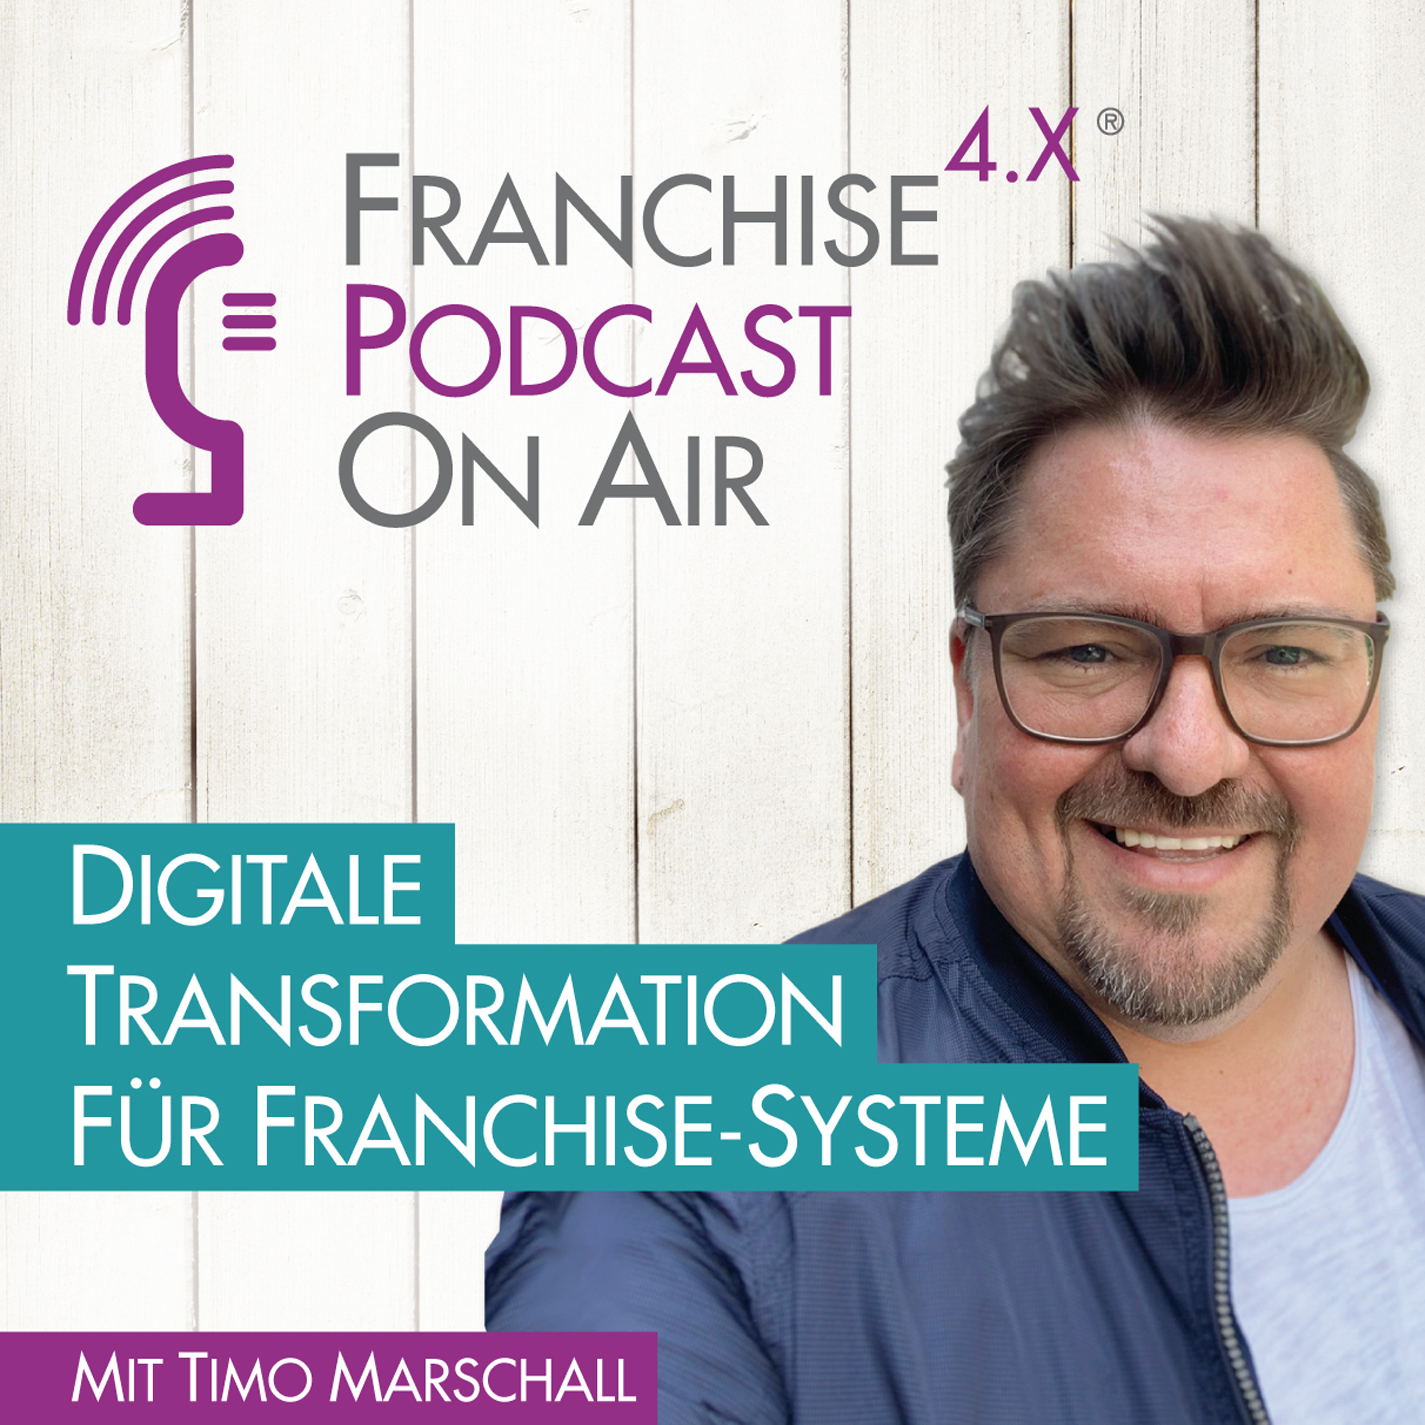 FRANCHISE 4.X ON AIR - Episode 12